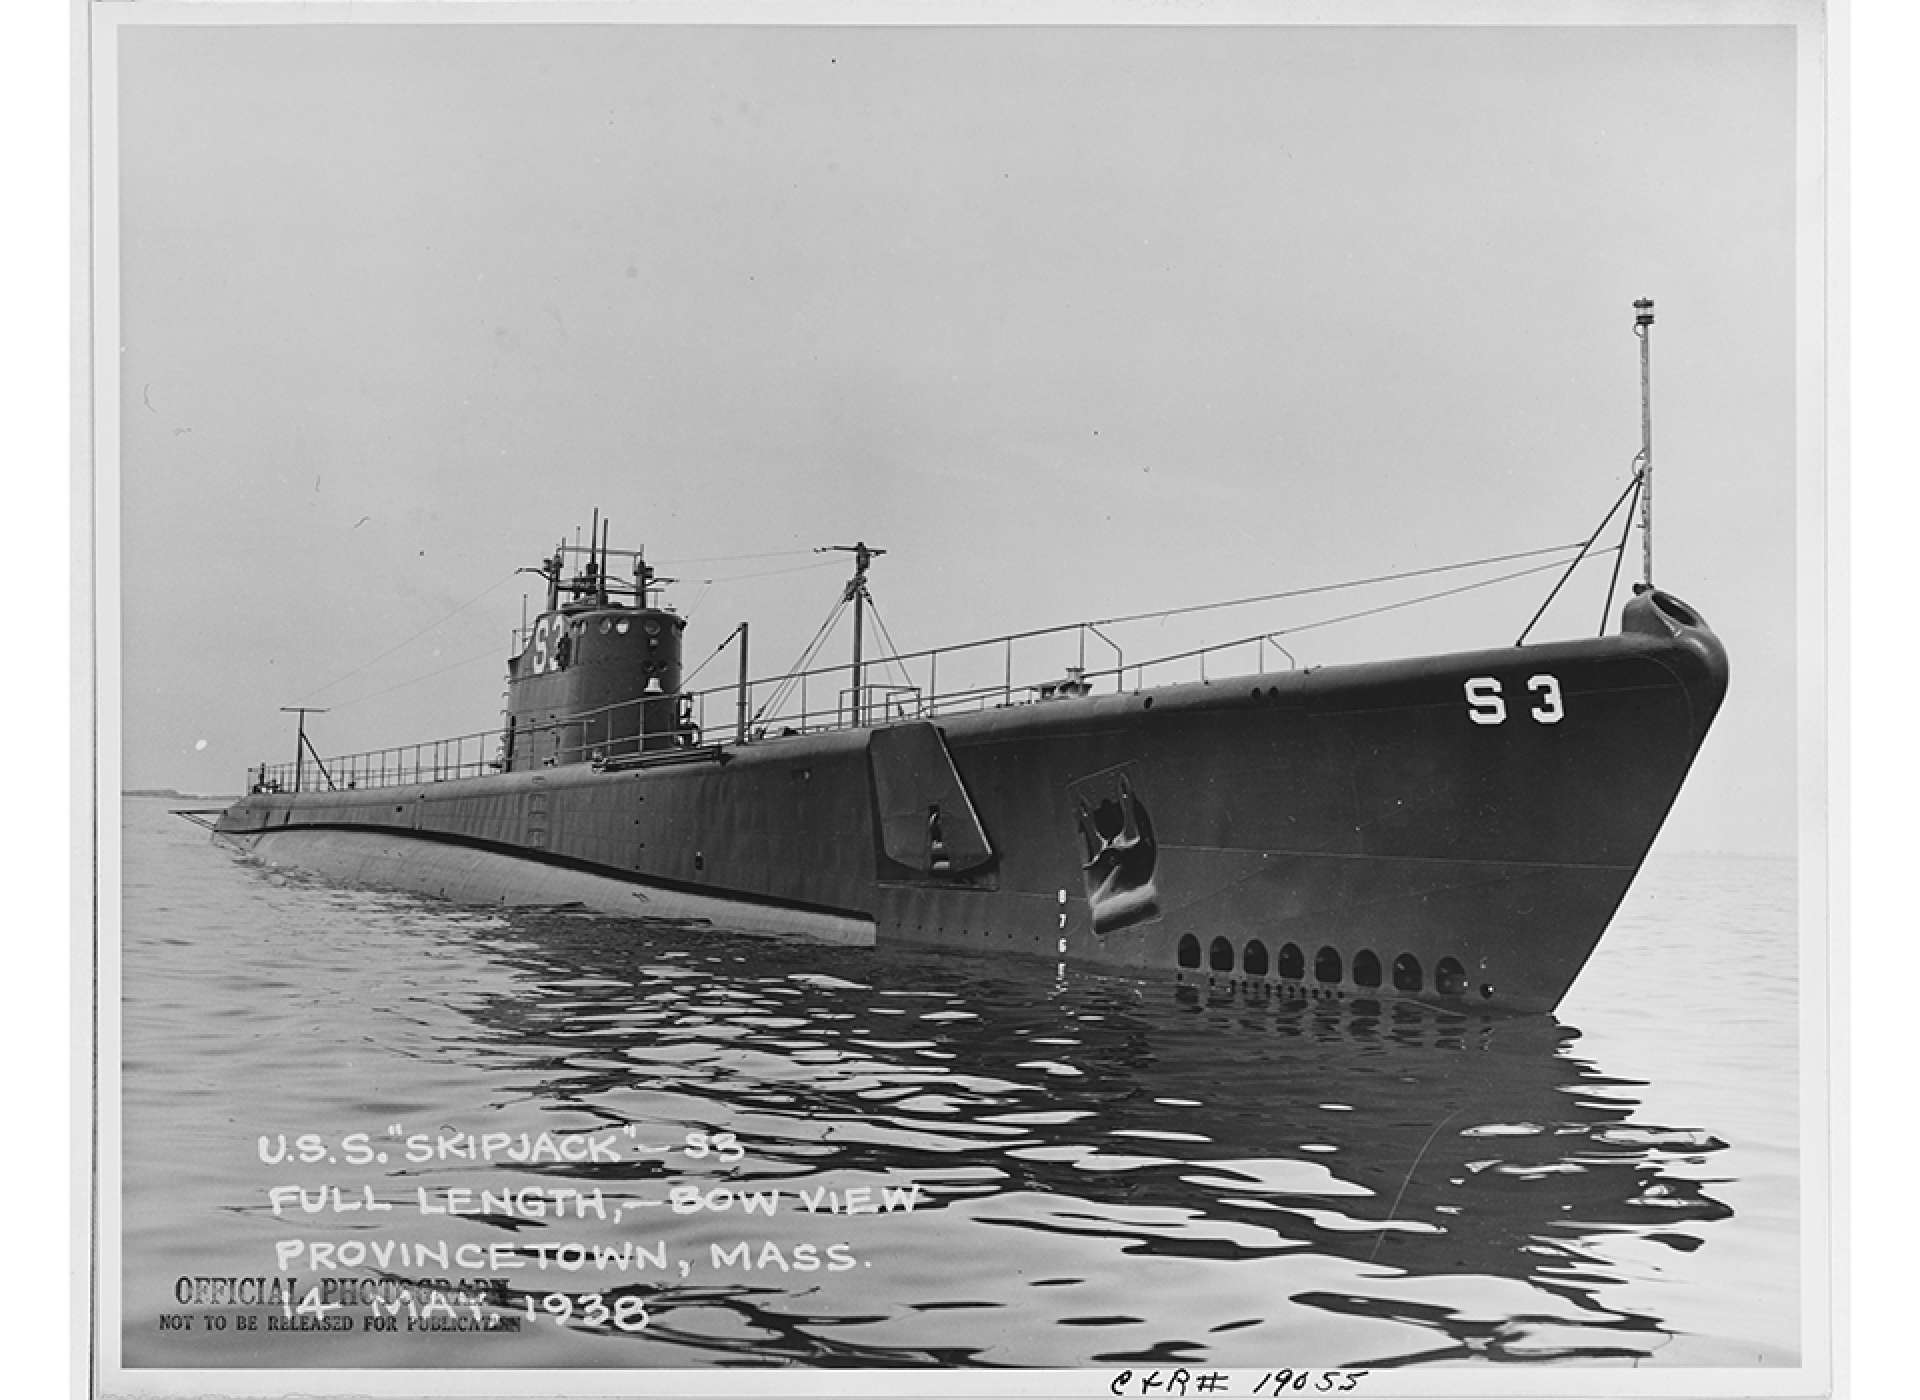 USS Skipjack during her sea trials in 1938. Courtesy of Naval History and Heritage Command.